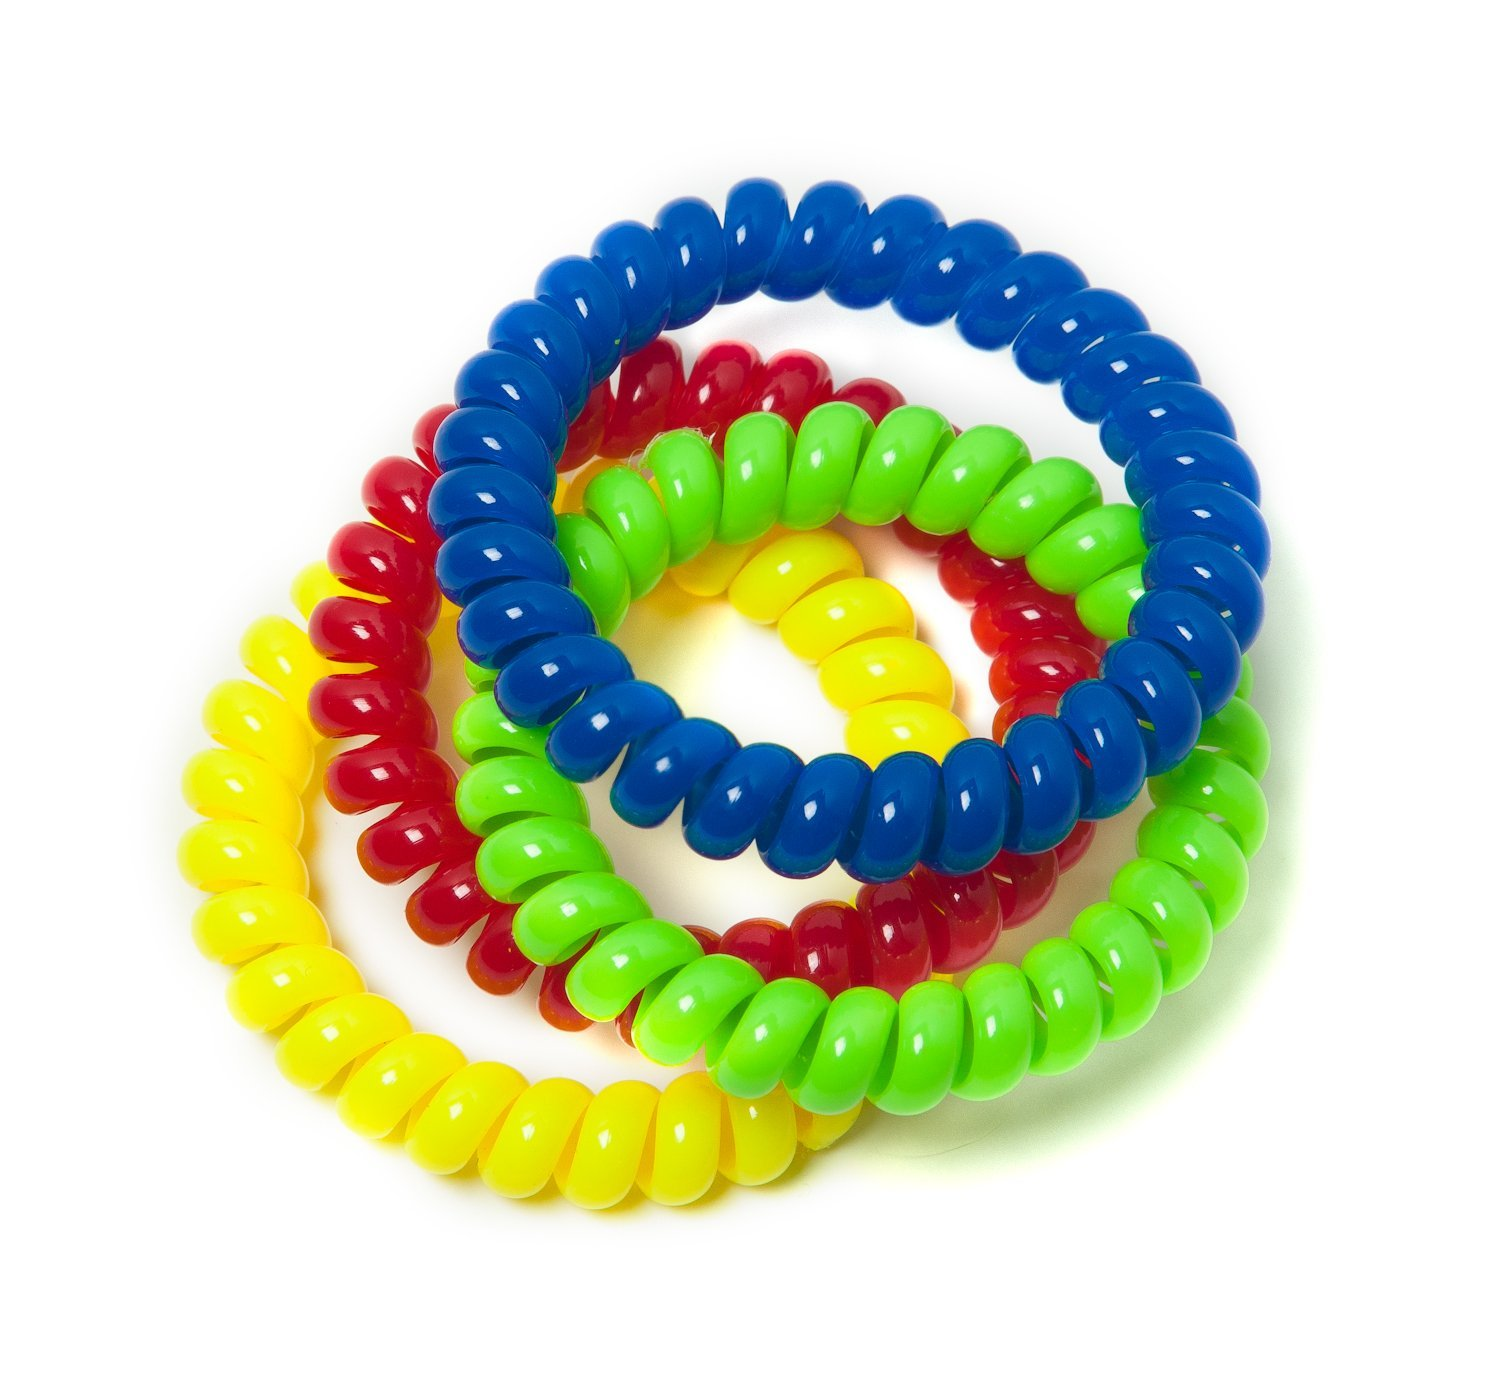 Amazon Chewable Jewelry Coil Bracelet Fun Sensory